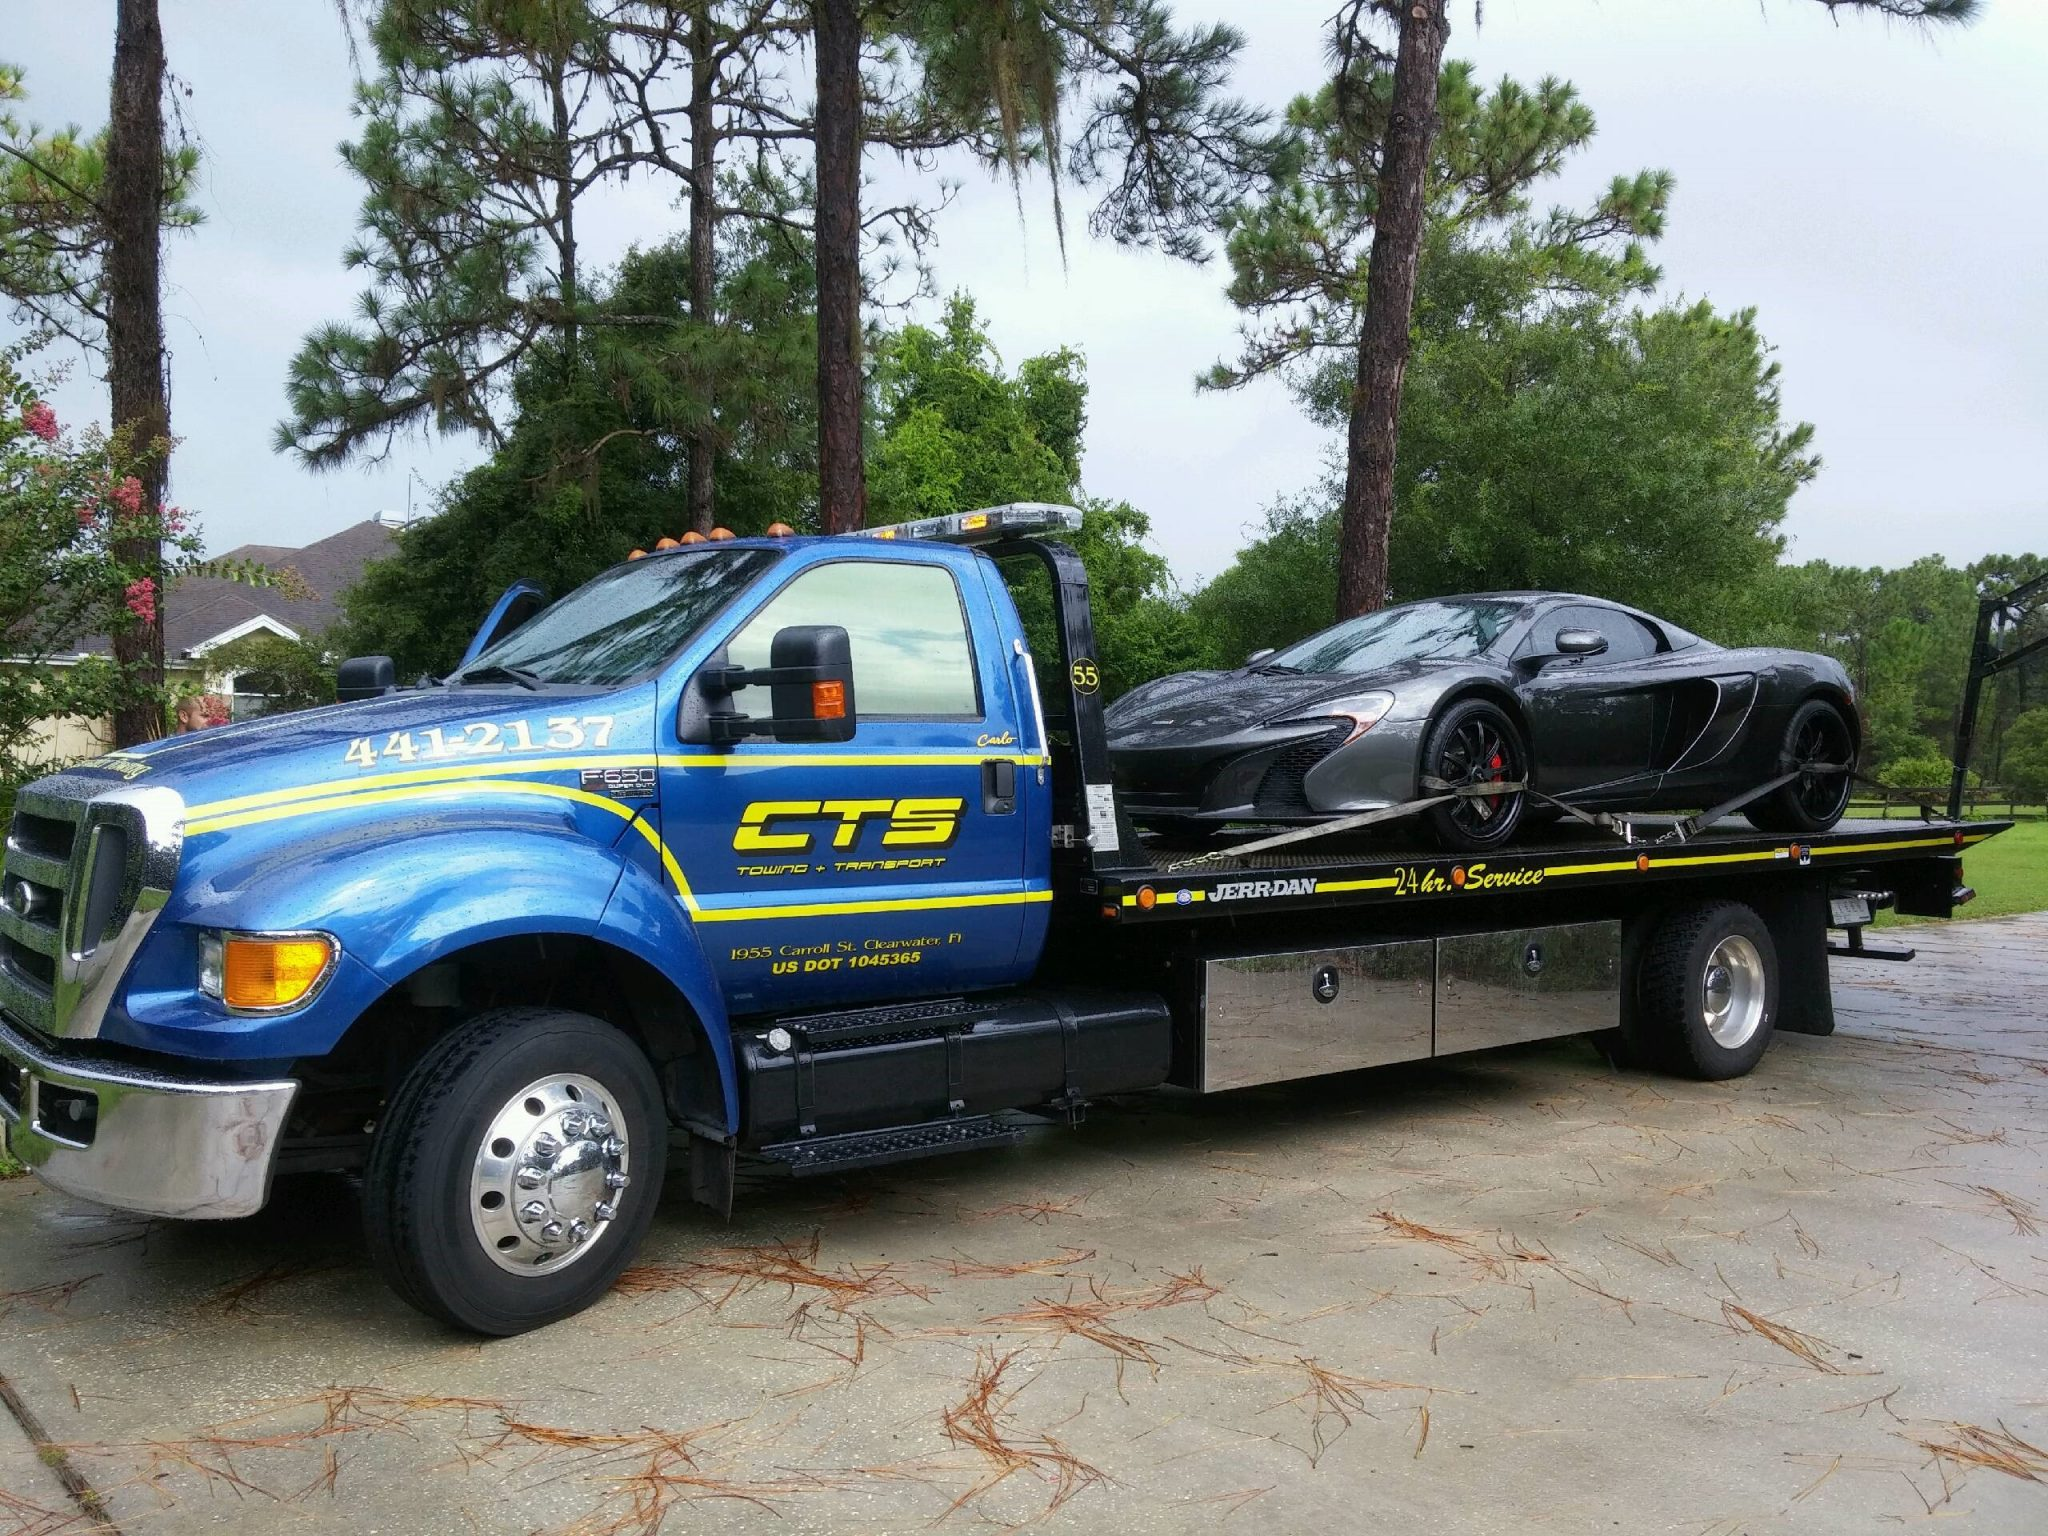 Rollback Maclaren 650S on a rollback CTS Tow Truck